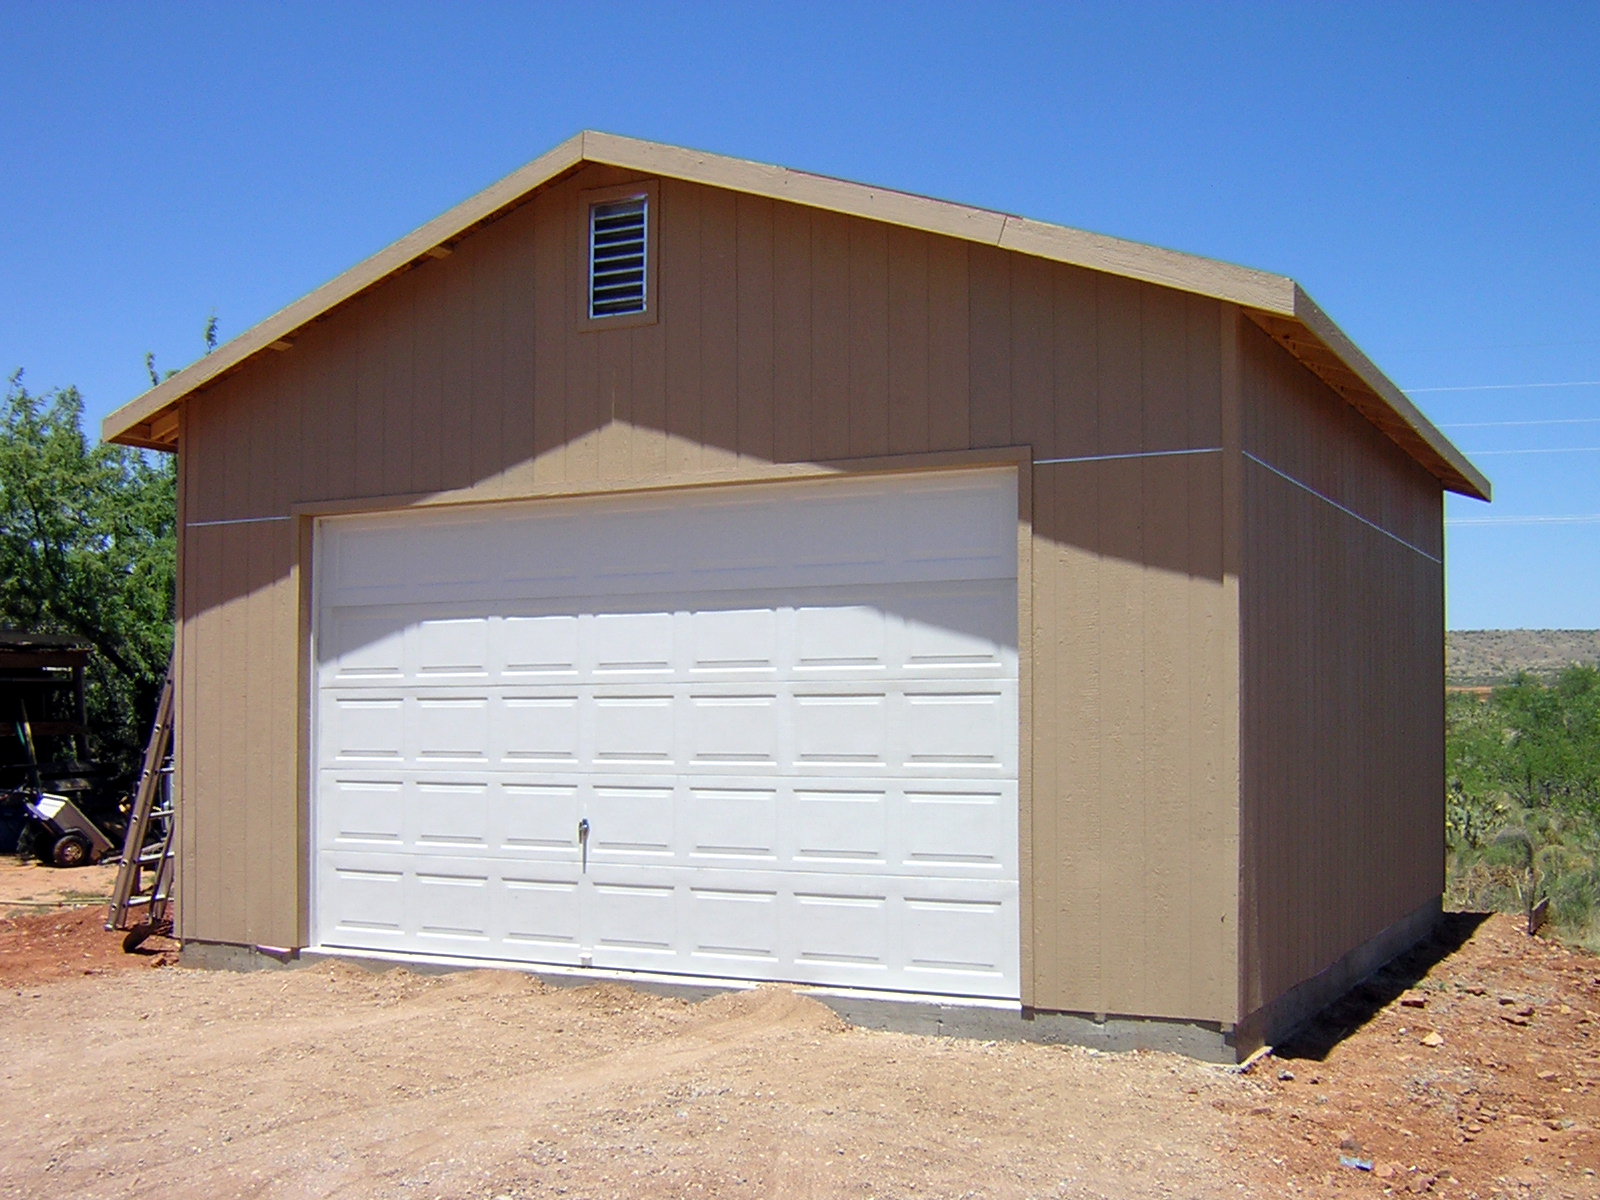 Home plans michigan for Tall garage doors